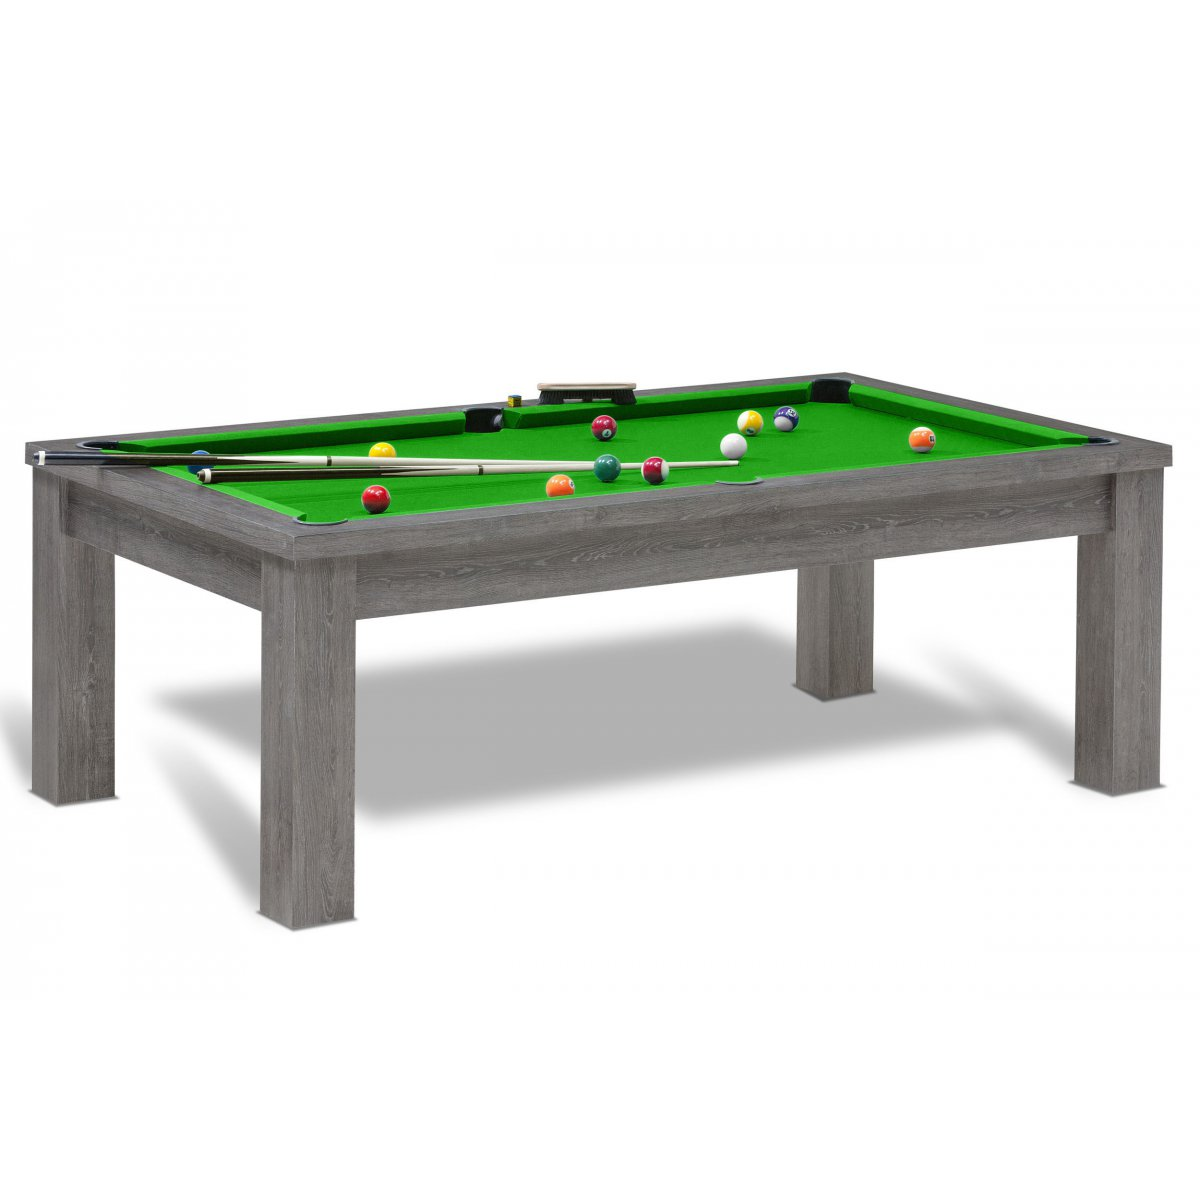 Billard am ricain table de jeu de billard us convertible for Table de salle a manger billard